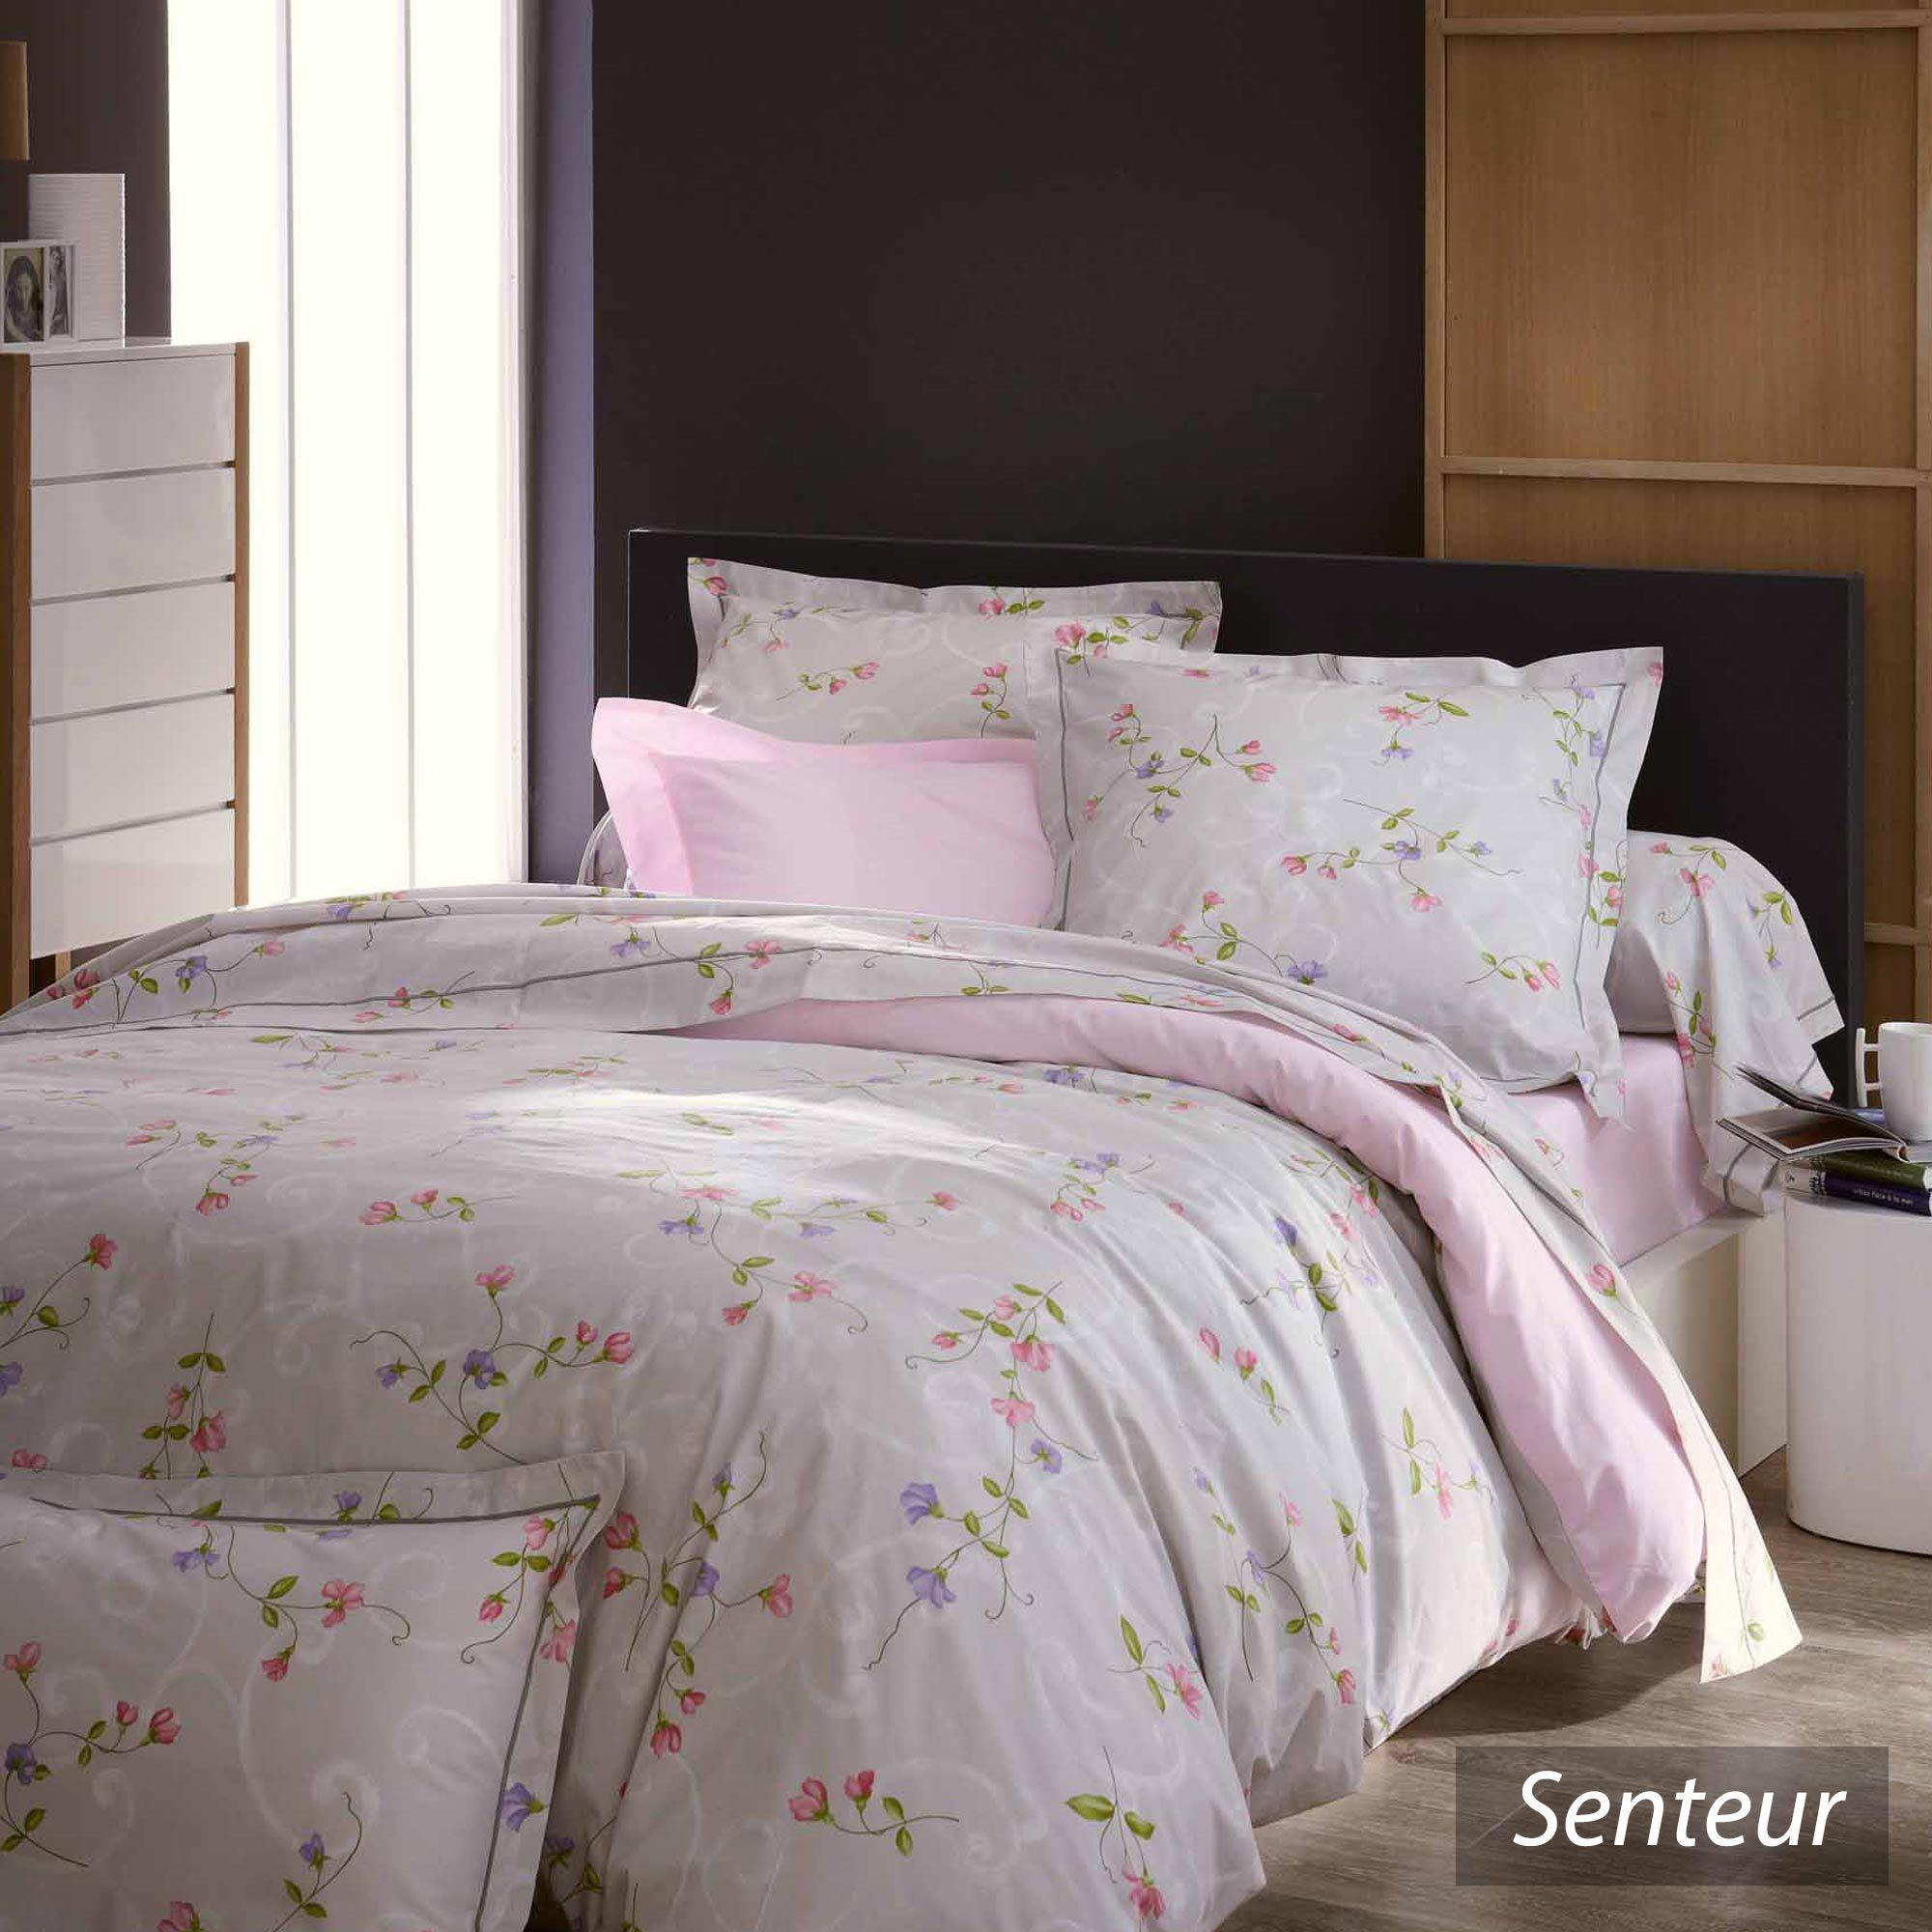 housse de couette 140x200 cm percale pur coton senteur. Black Bedroom Furniture Sets. Home Design Ideas